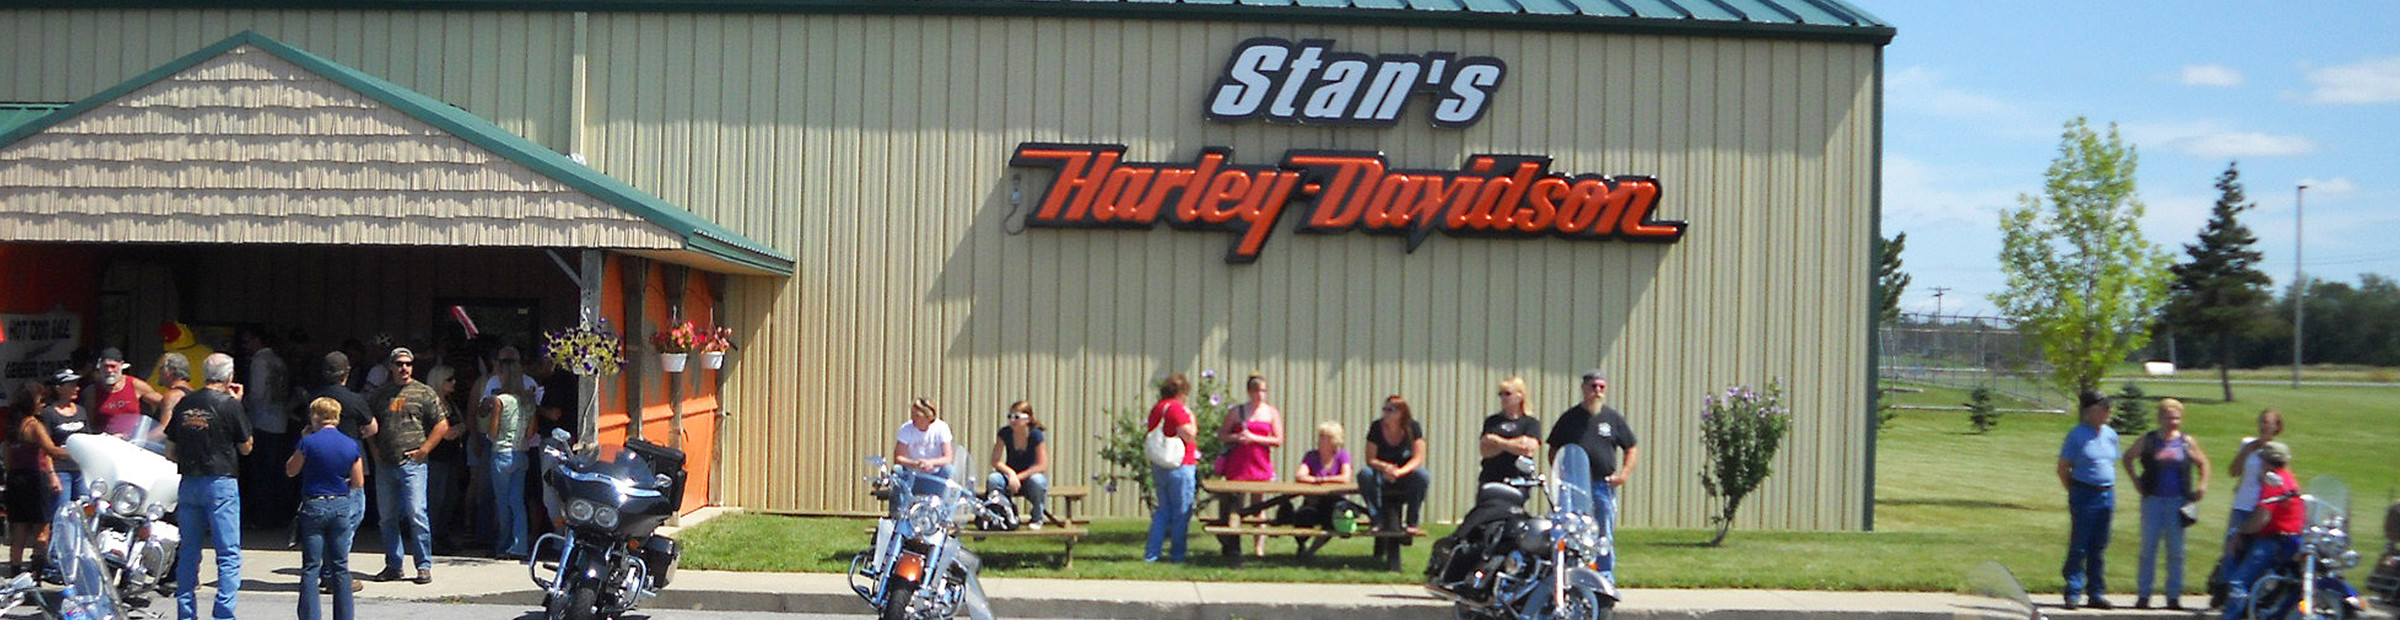 Stan's Harley-Davidson Events